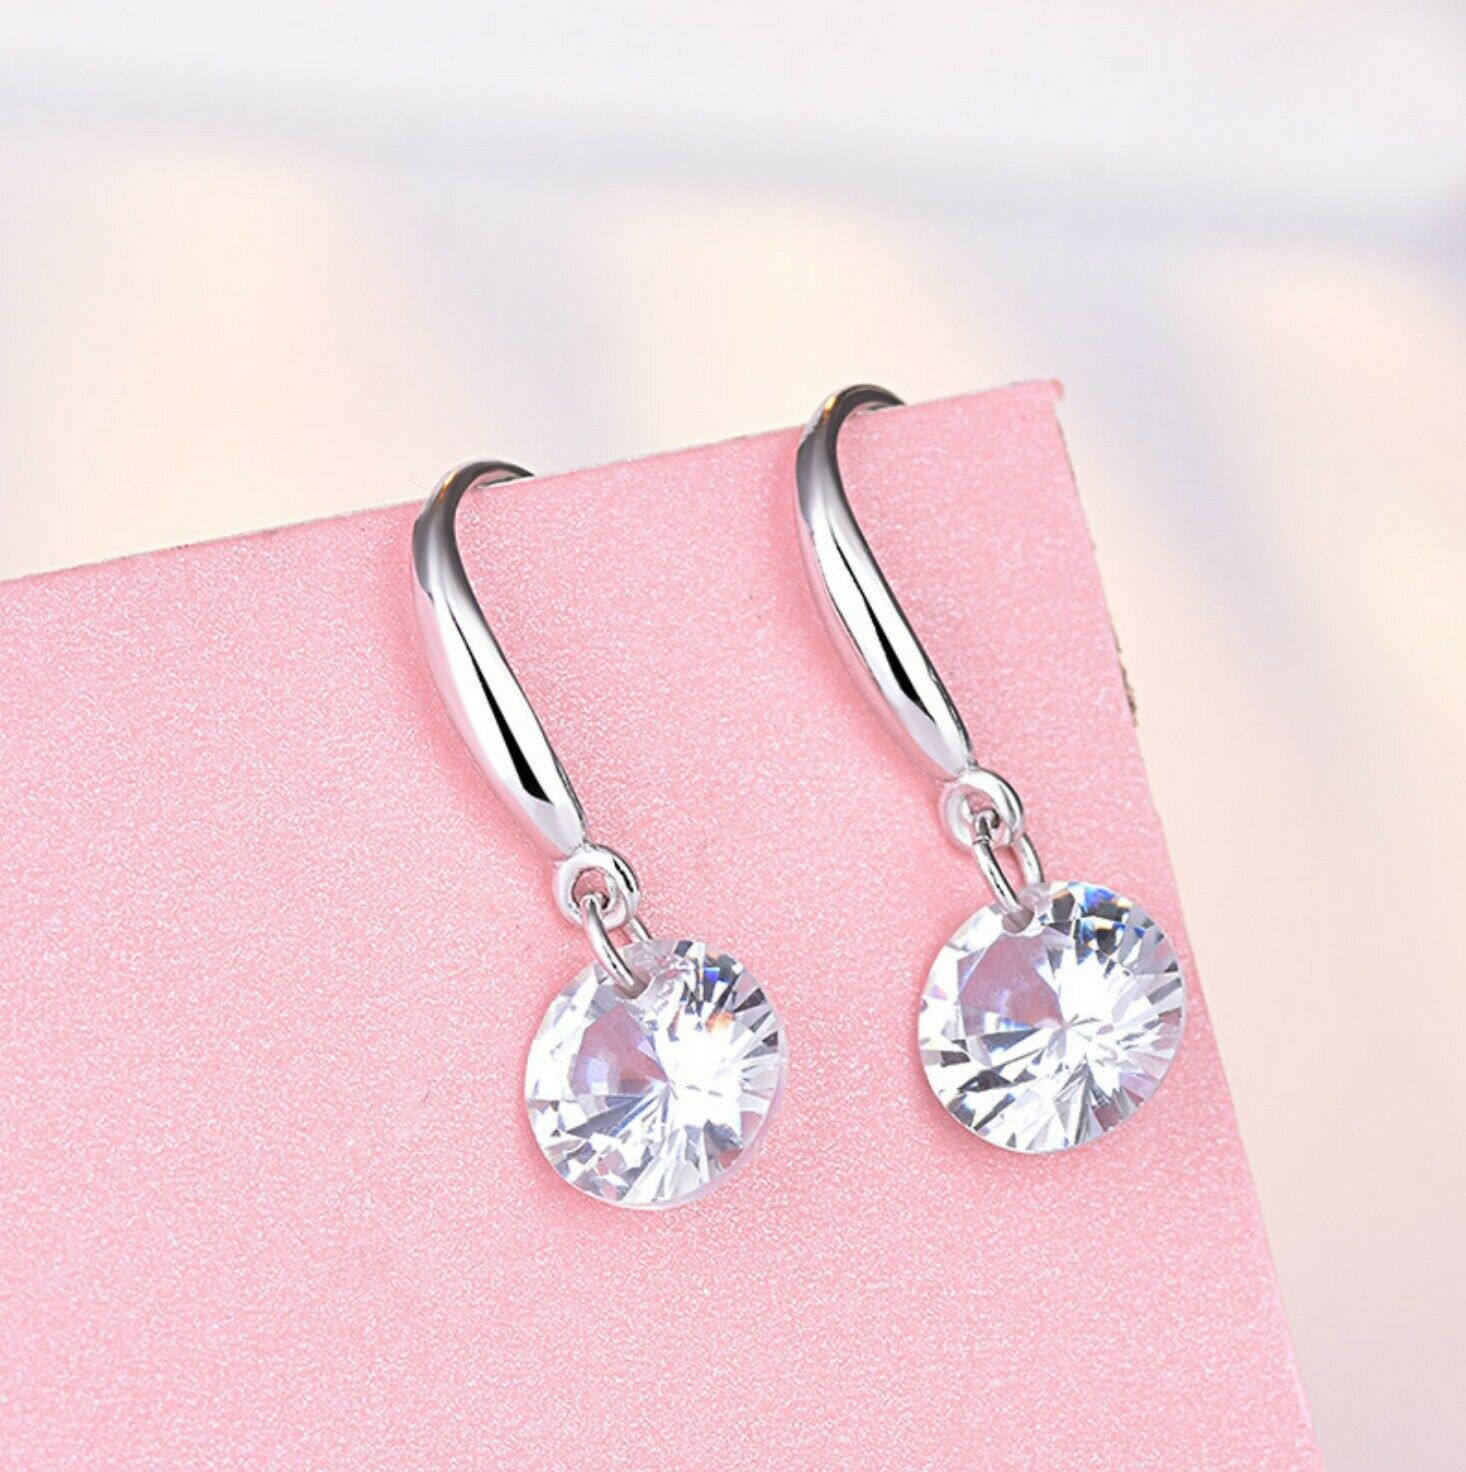 Jewellery - Crystal Stone Drop Hook Stud Earrings 925 Sterling Silver Womens Girls Jewellery